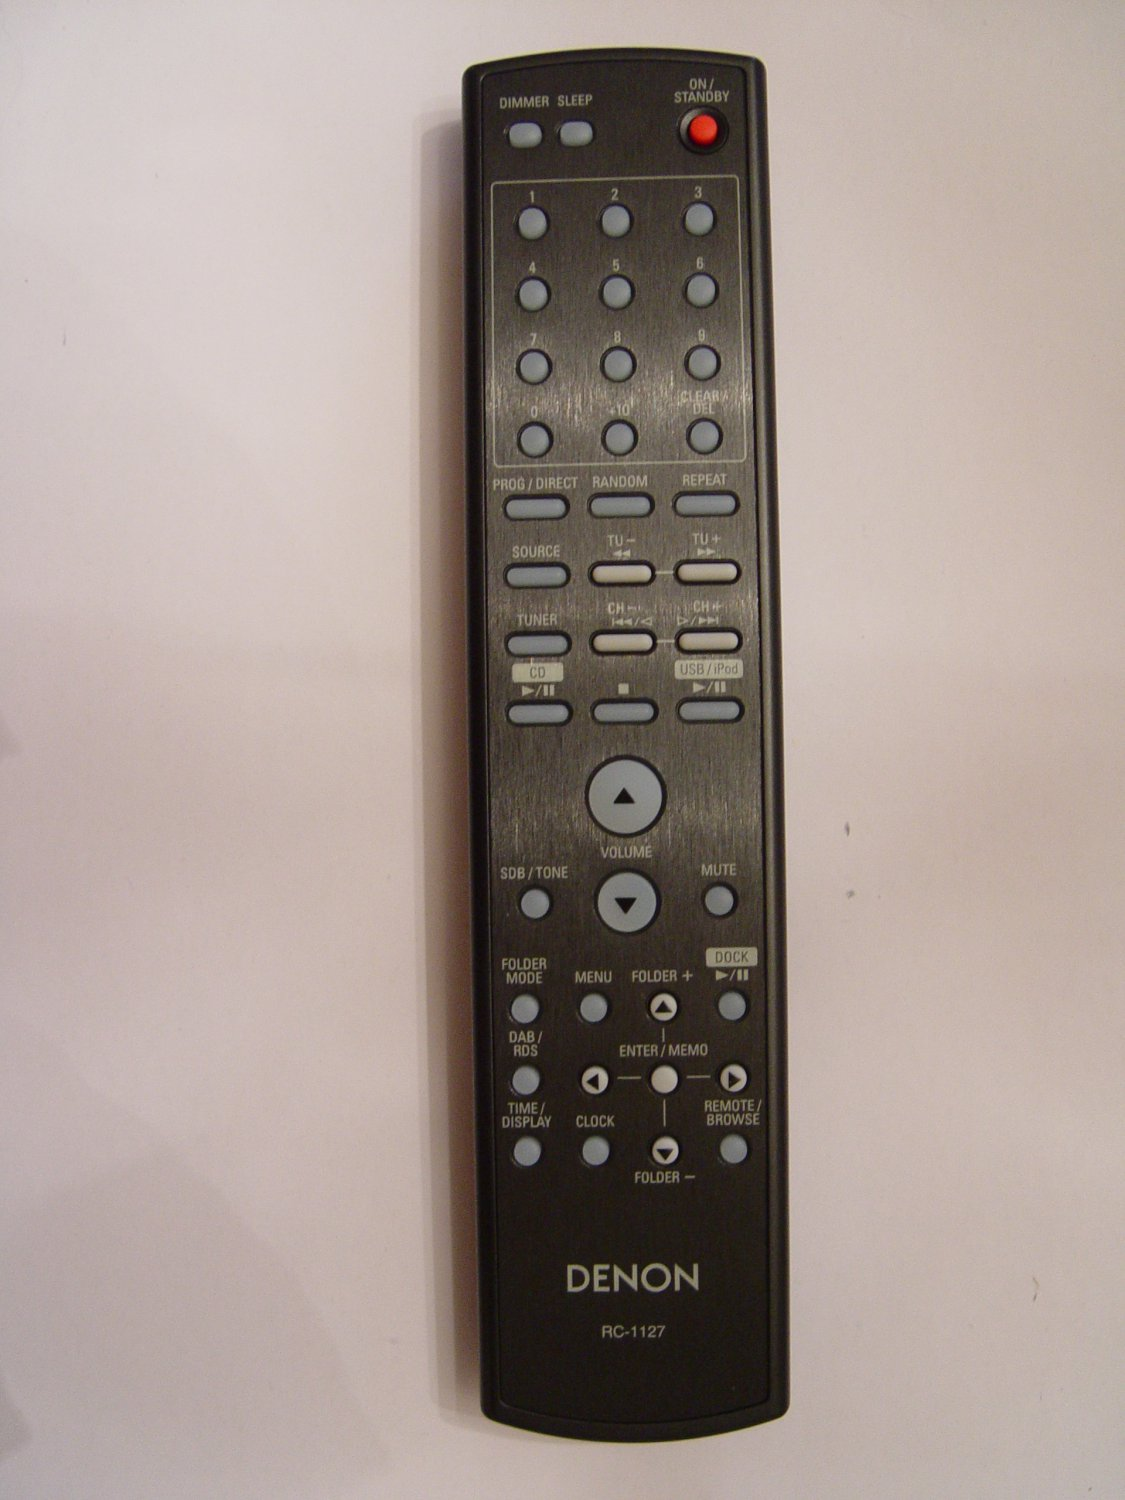 DENON RC-1127 REMOTE CONTROL PART # 943307007900D